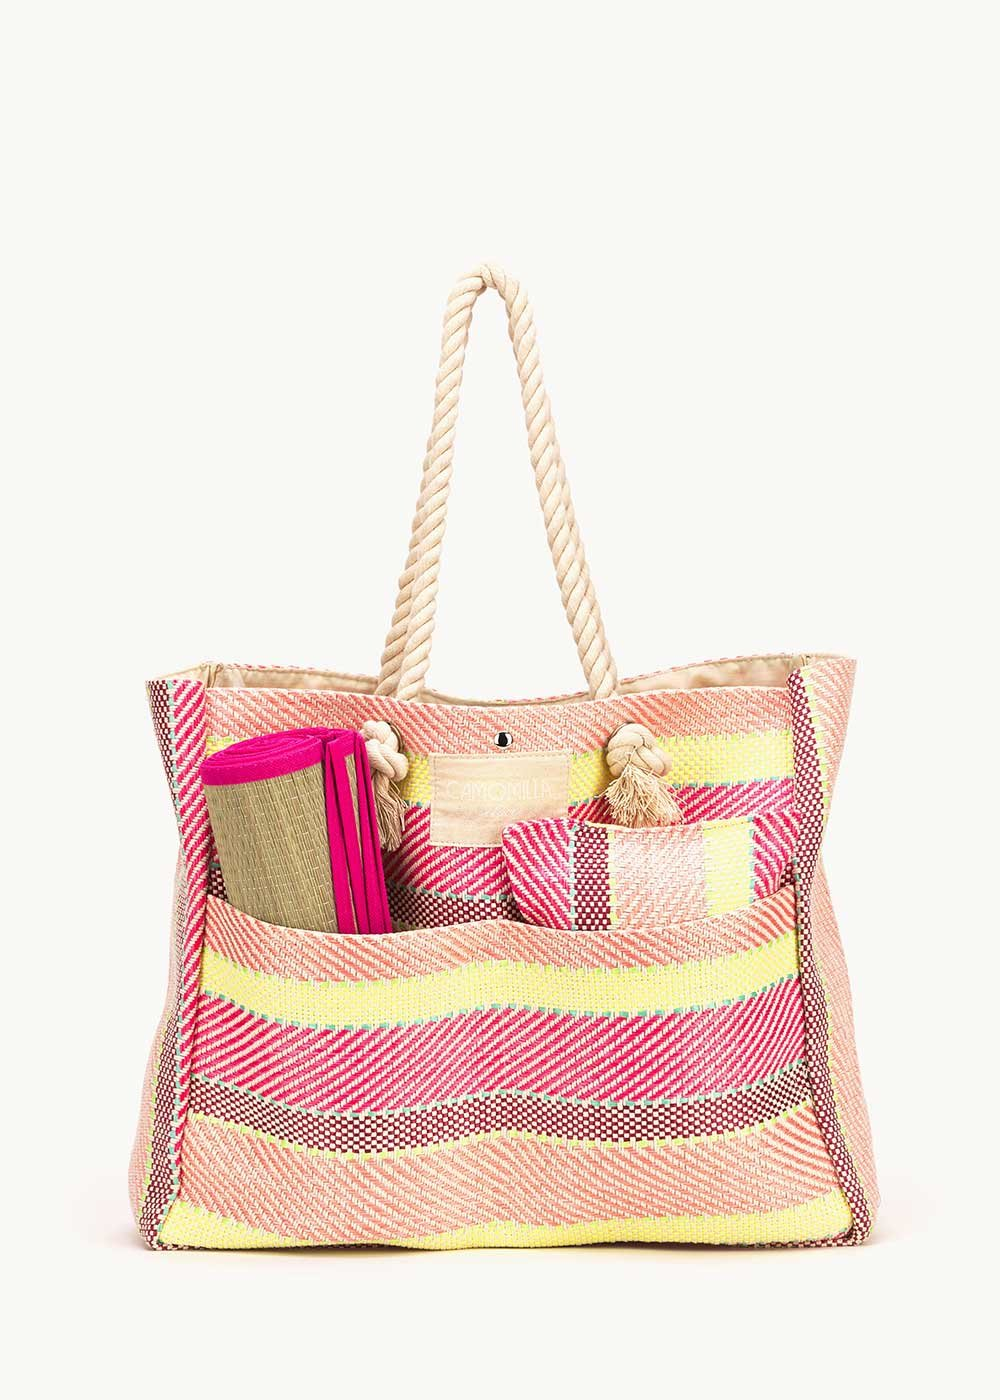 Barry bag with beach set - Candy Stripes - Woman